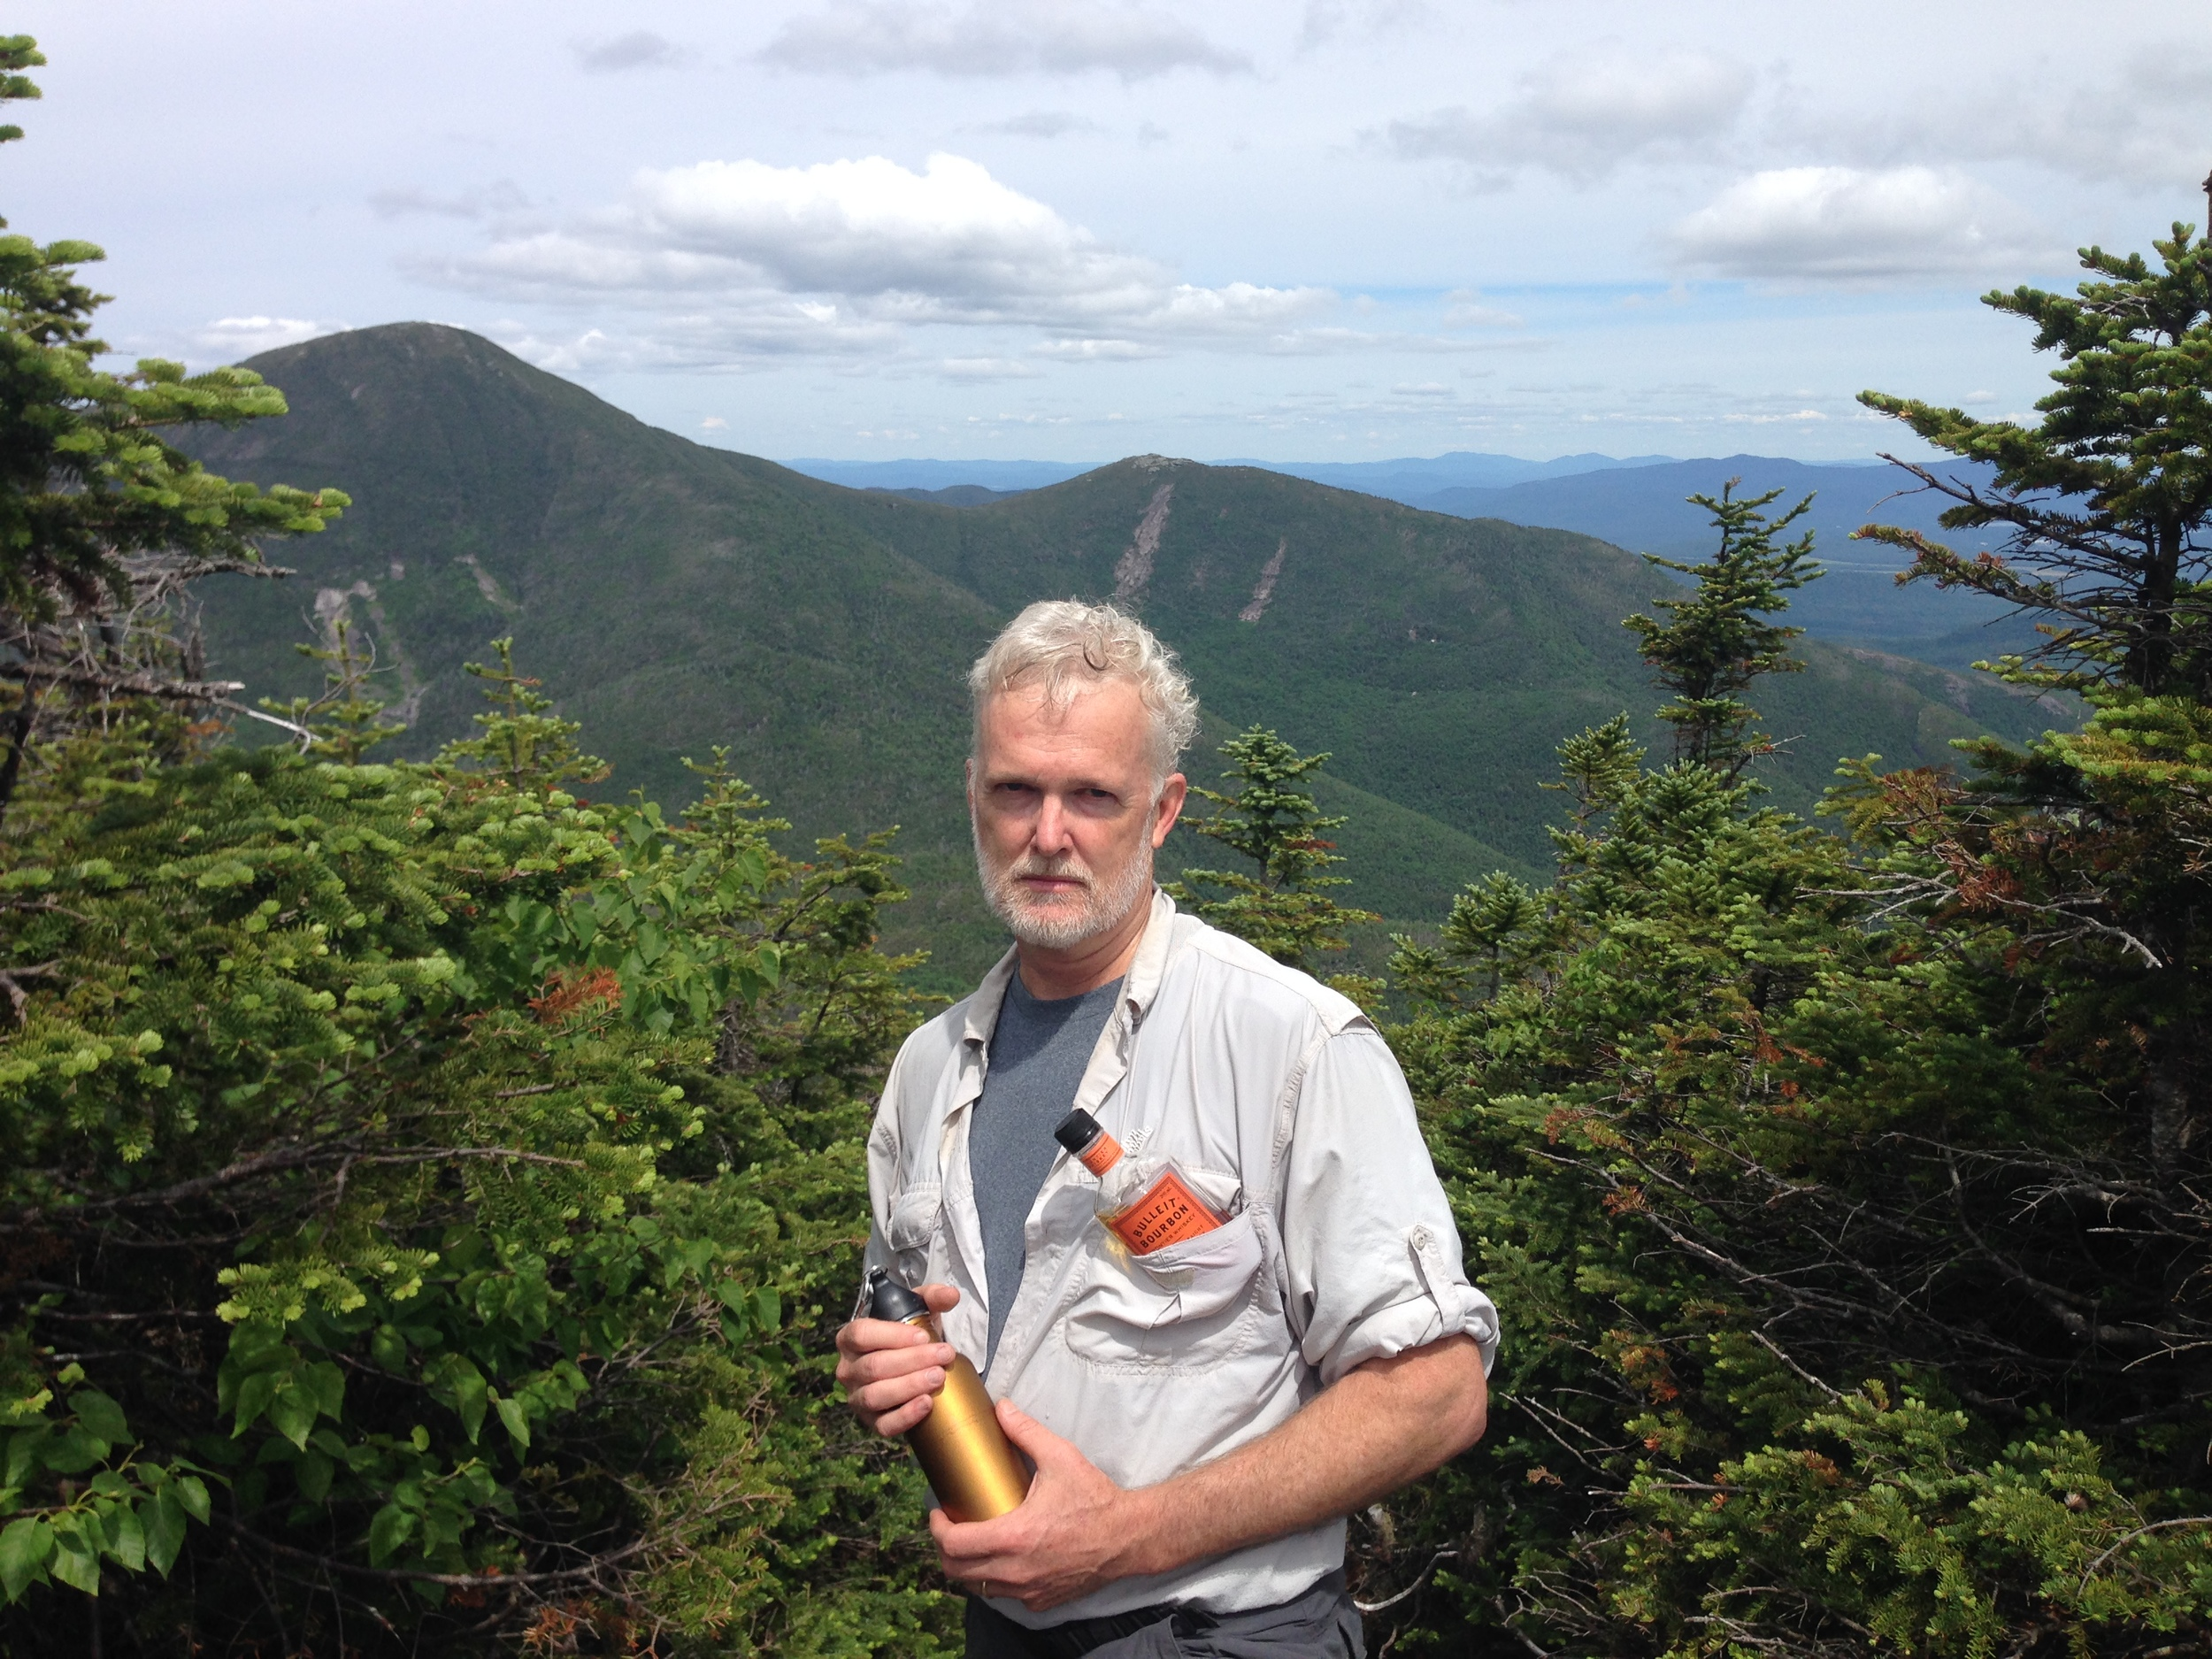 Real hikers carry Bulleit bourbon in their chest pocket